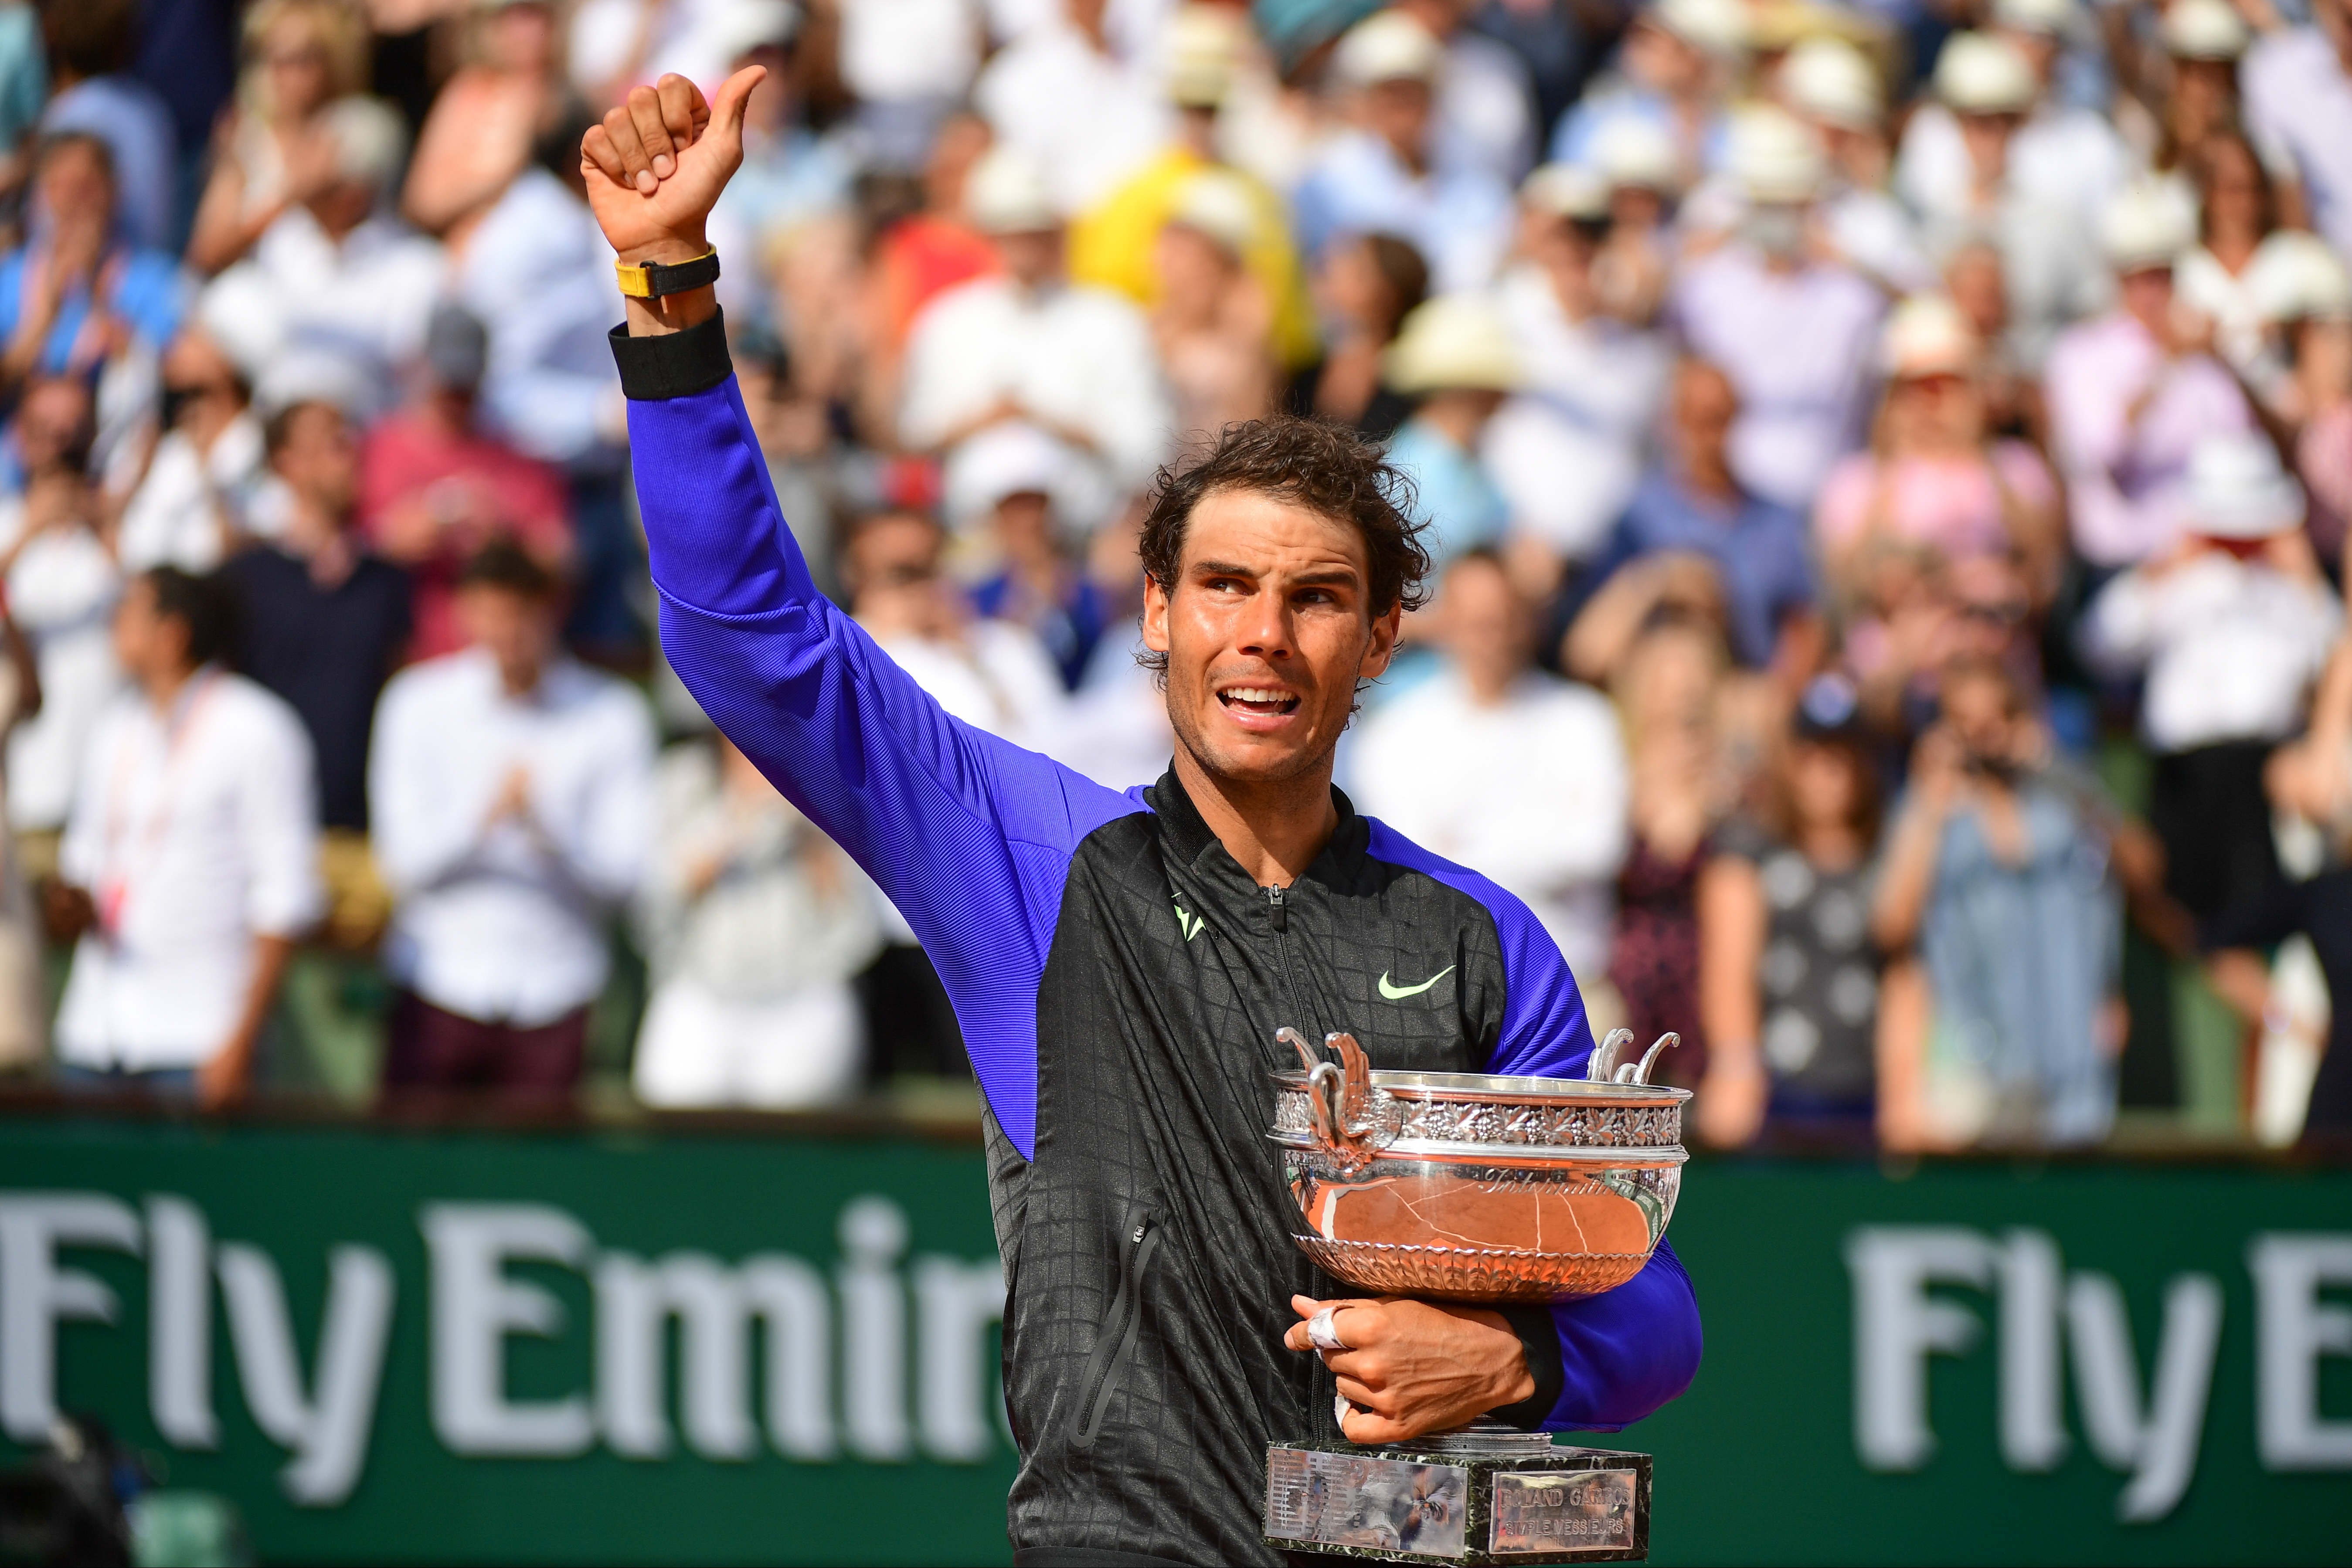 French Open Prize Money